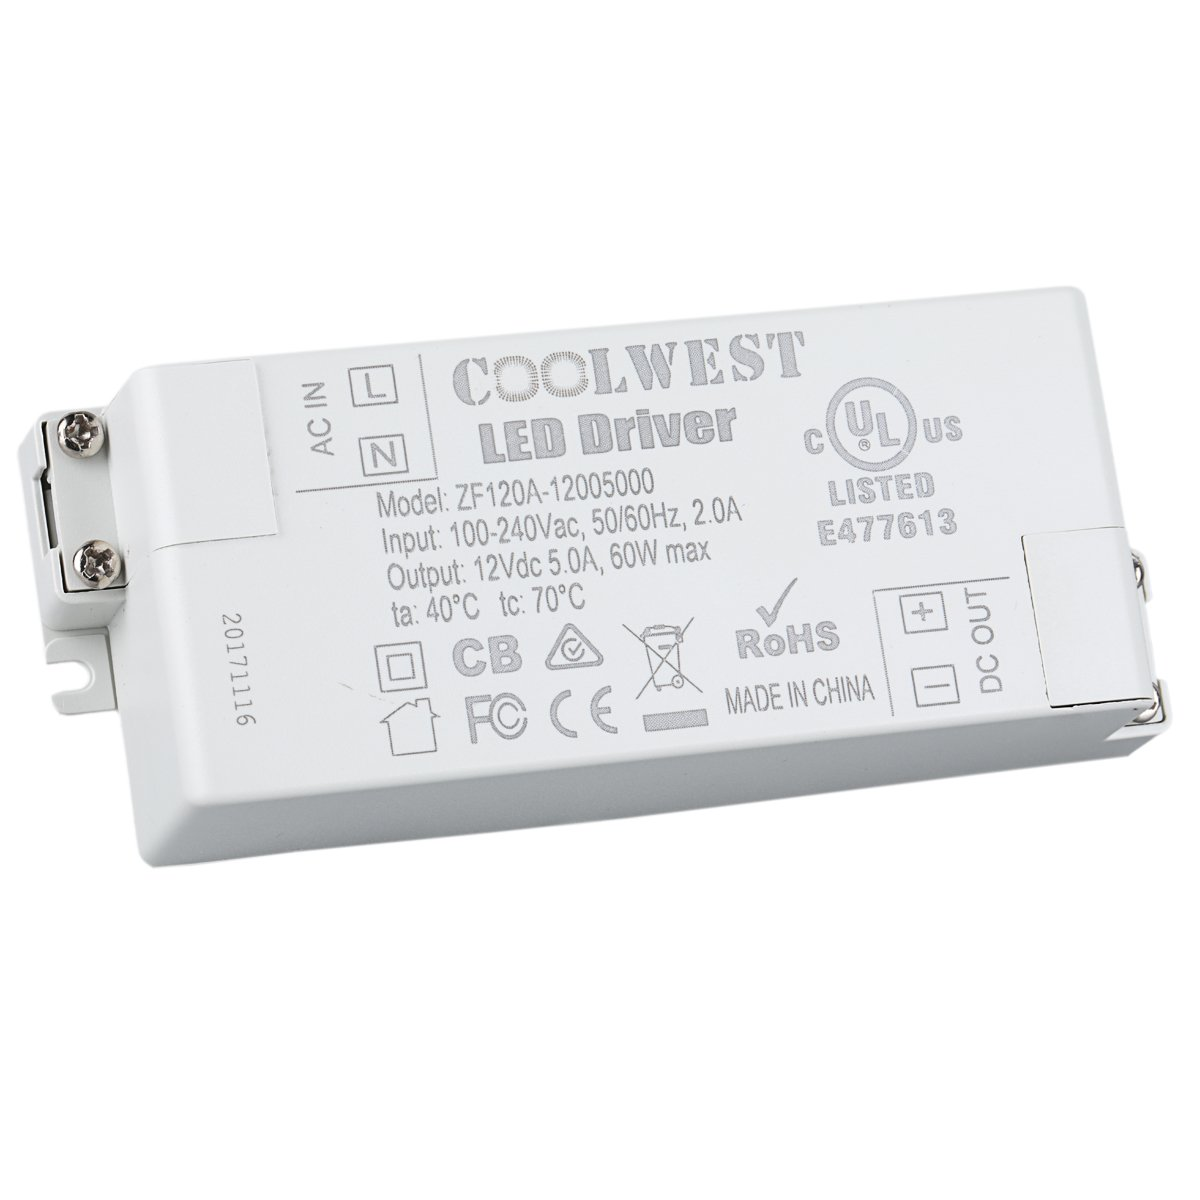 COOLWEST Transformer Driver Power Supply 60W 12V for LED Strip Lights and G4, MR11, MR16 Light Bulbs